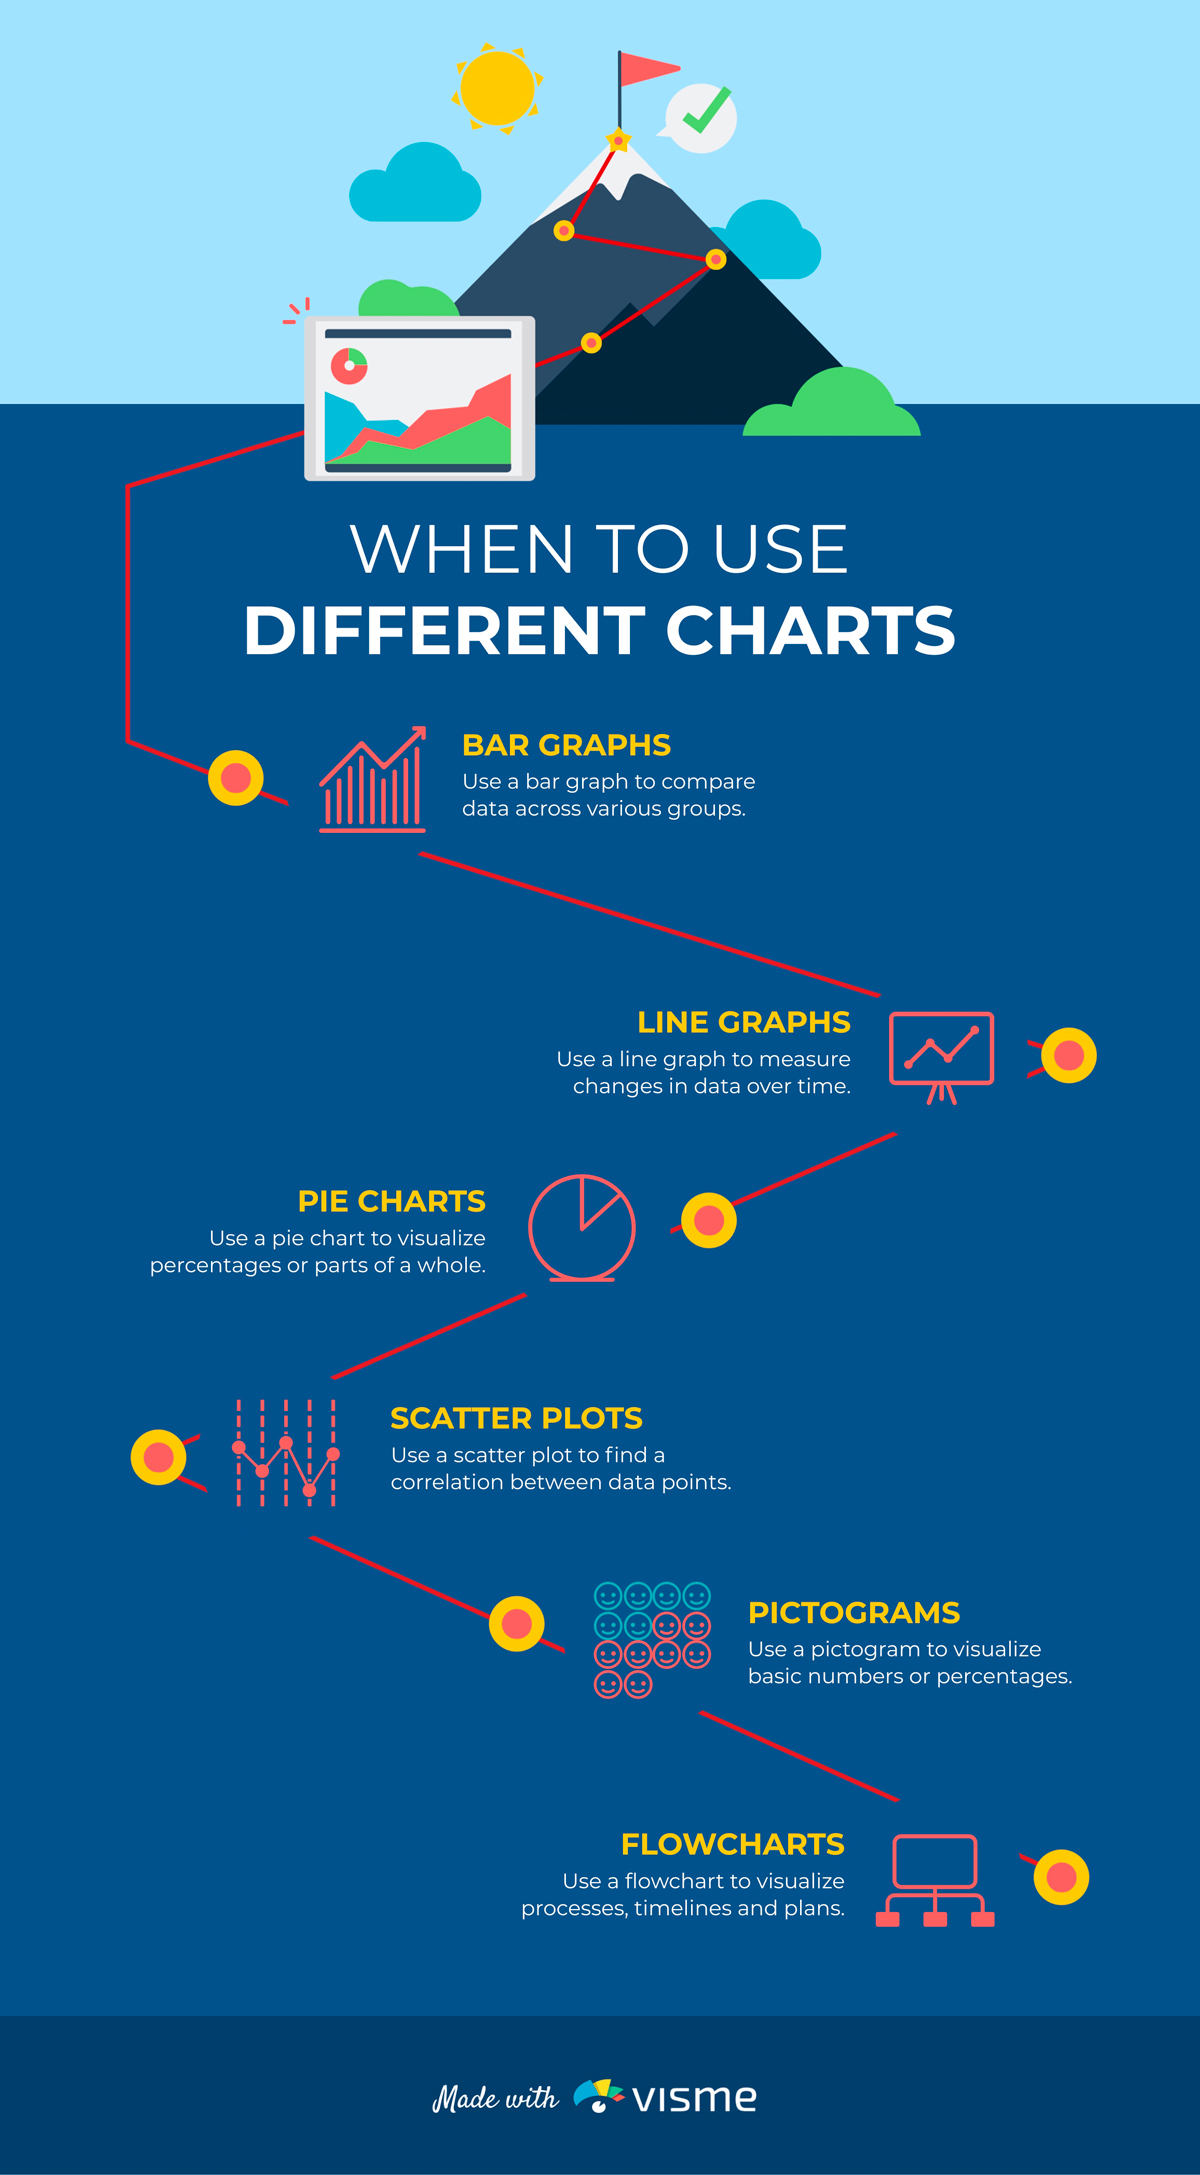 An infographic showcasing when to use different charts.